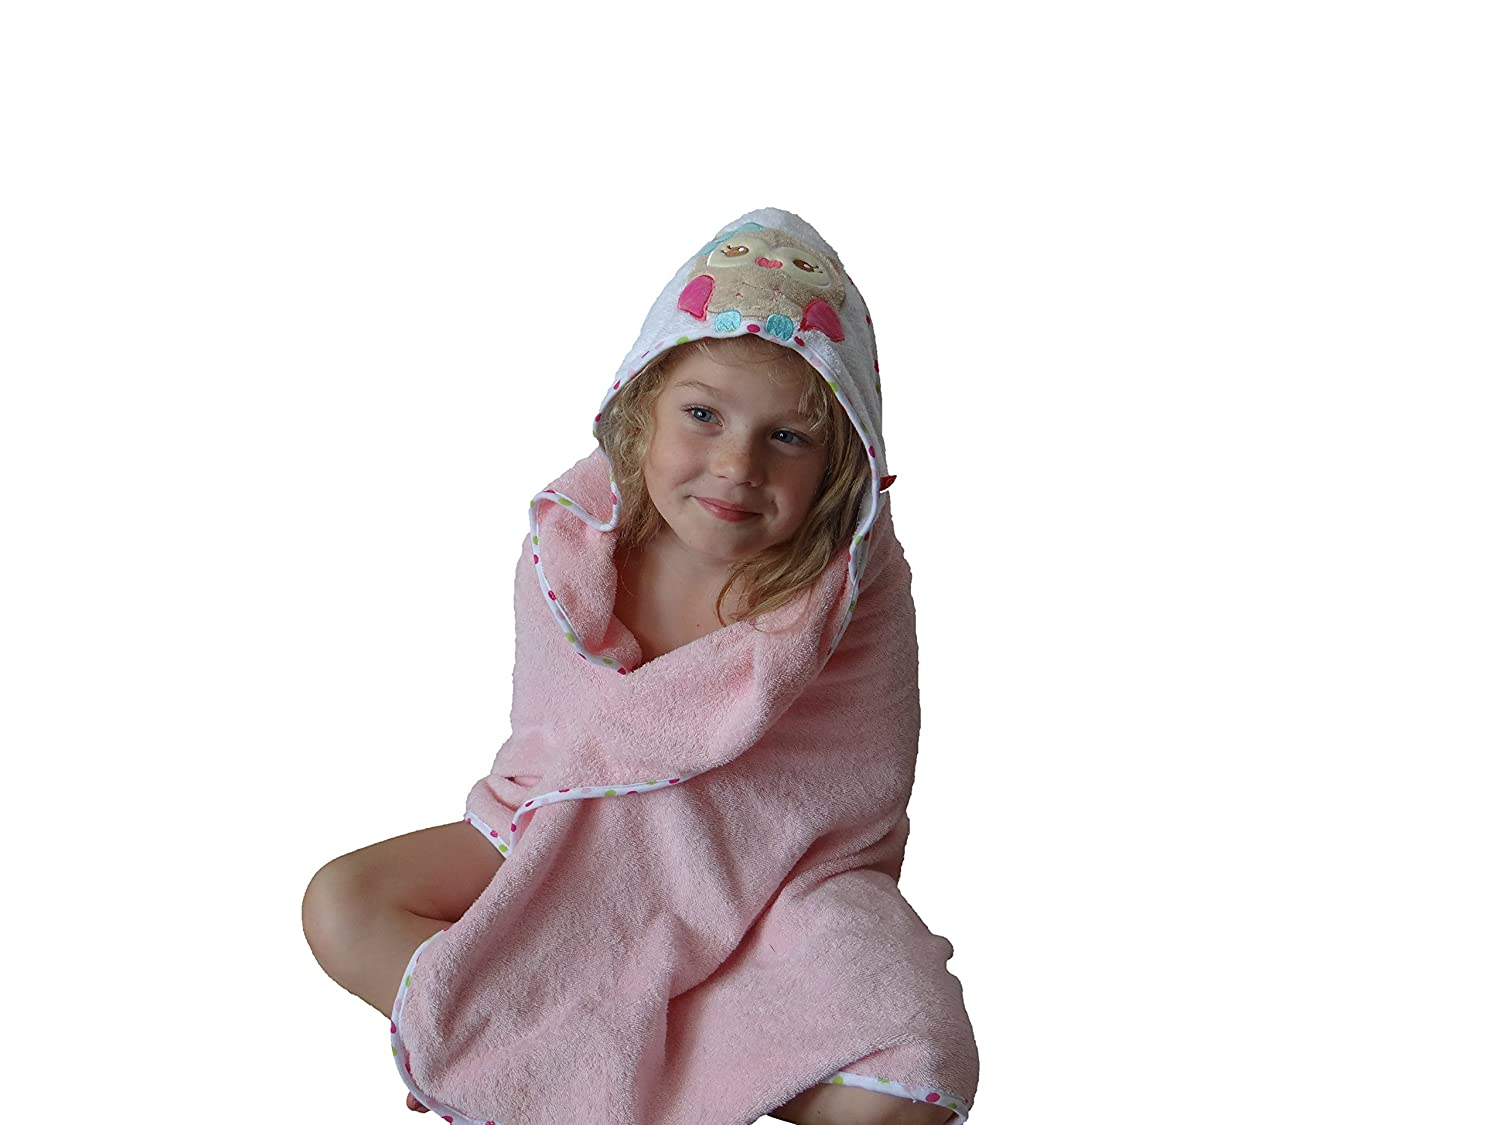 BlueberryShop Embroidered LARGE COTTON HOODED Bath Pool Beach TOWEL Baby Kid Todler Gift 39.5 x 39.5 100 x 100 cm 0-8 Yrs Rosa